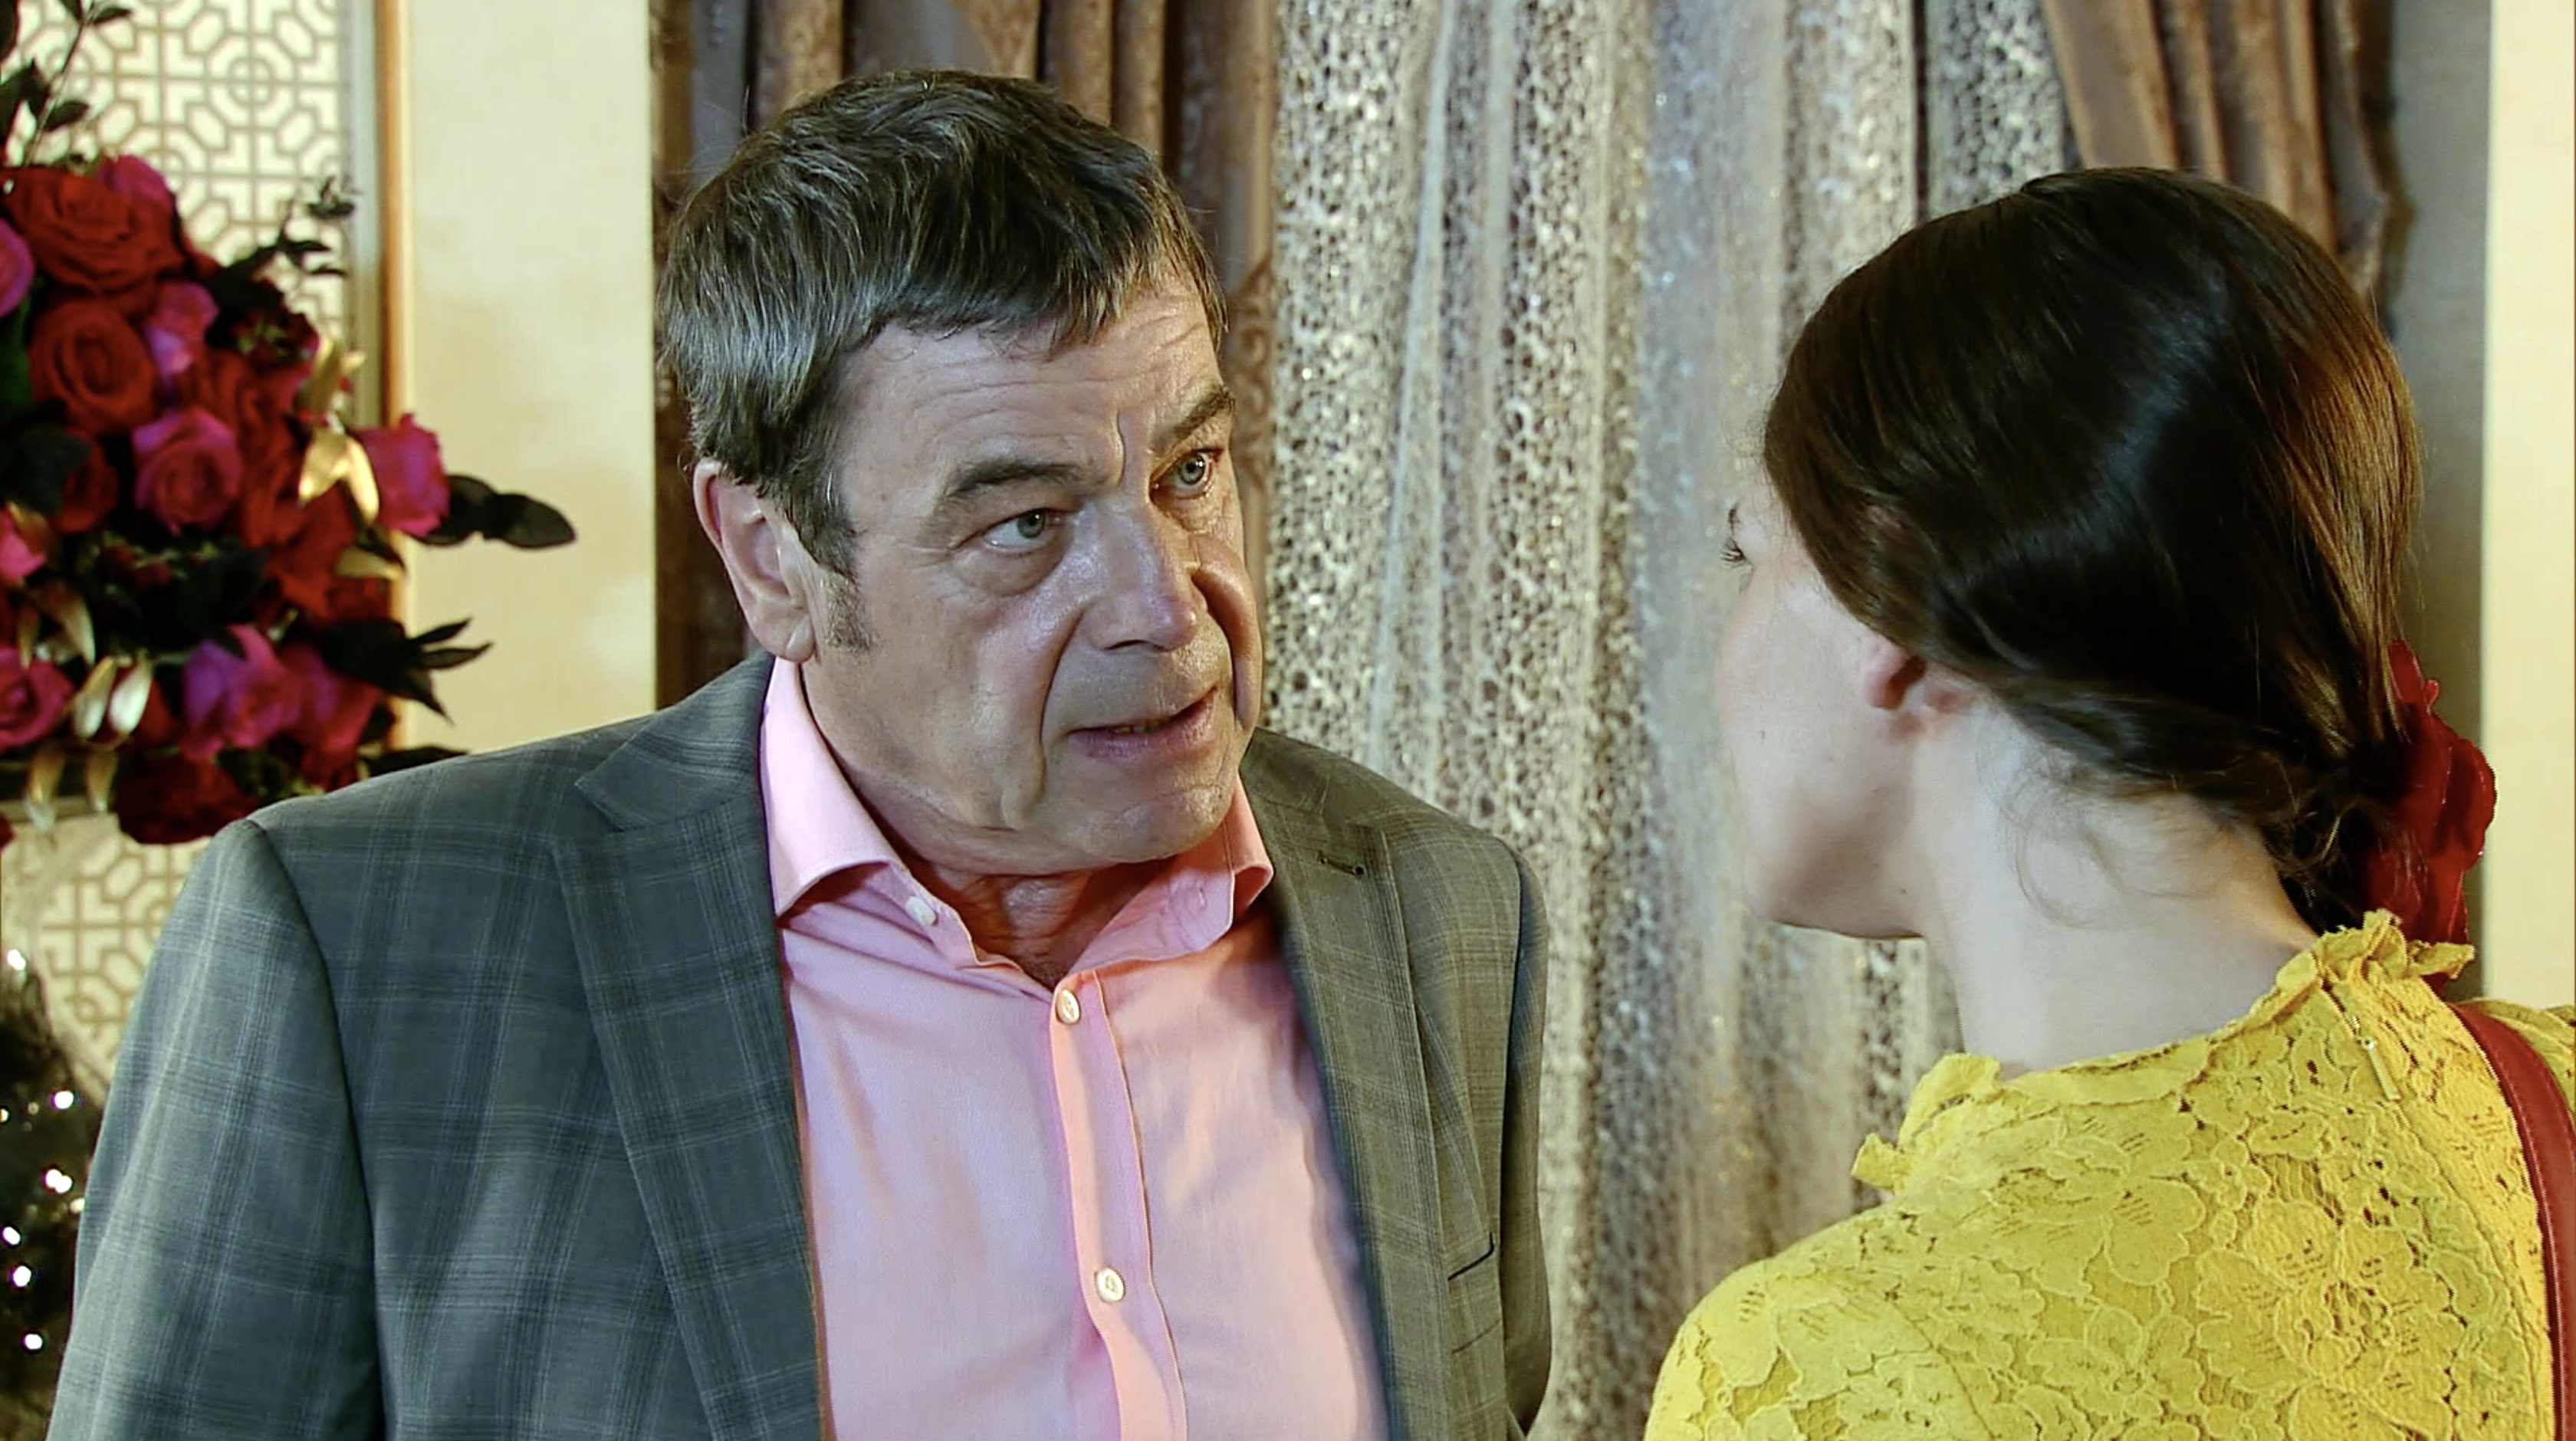 Johnny is caught in Coronation Street